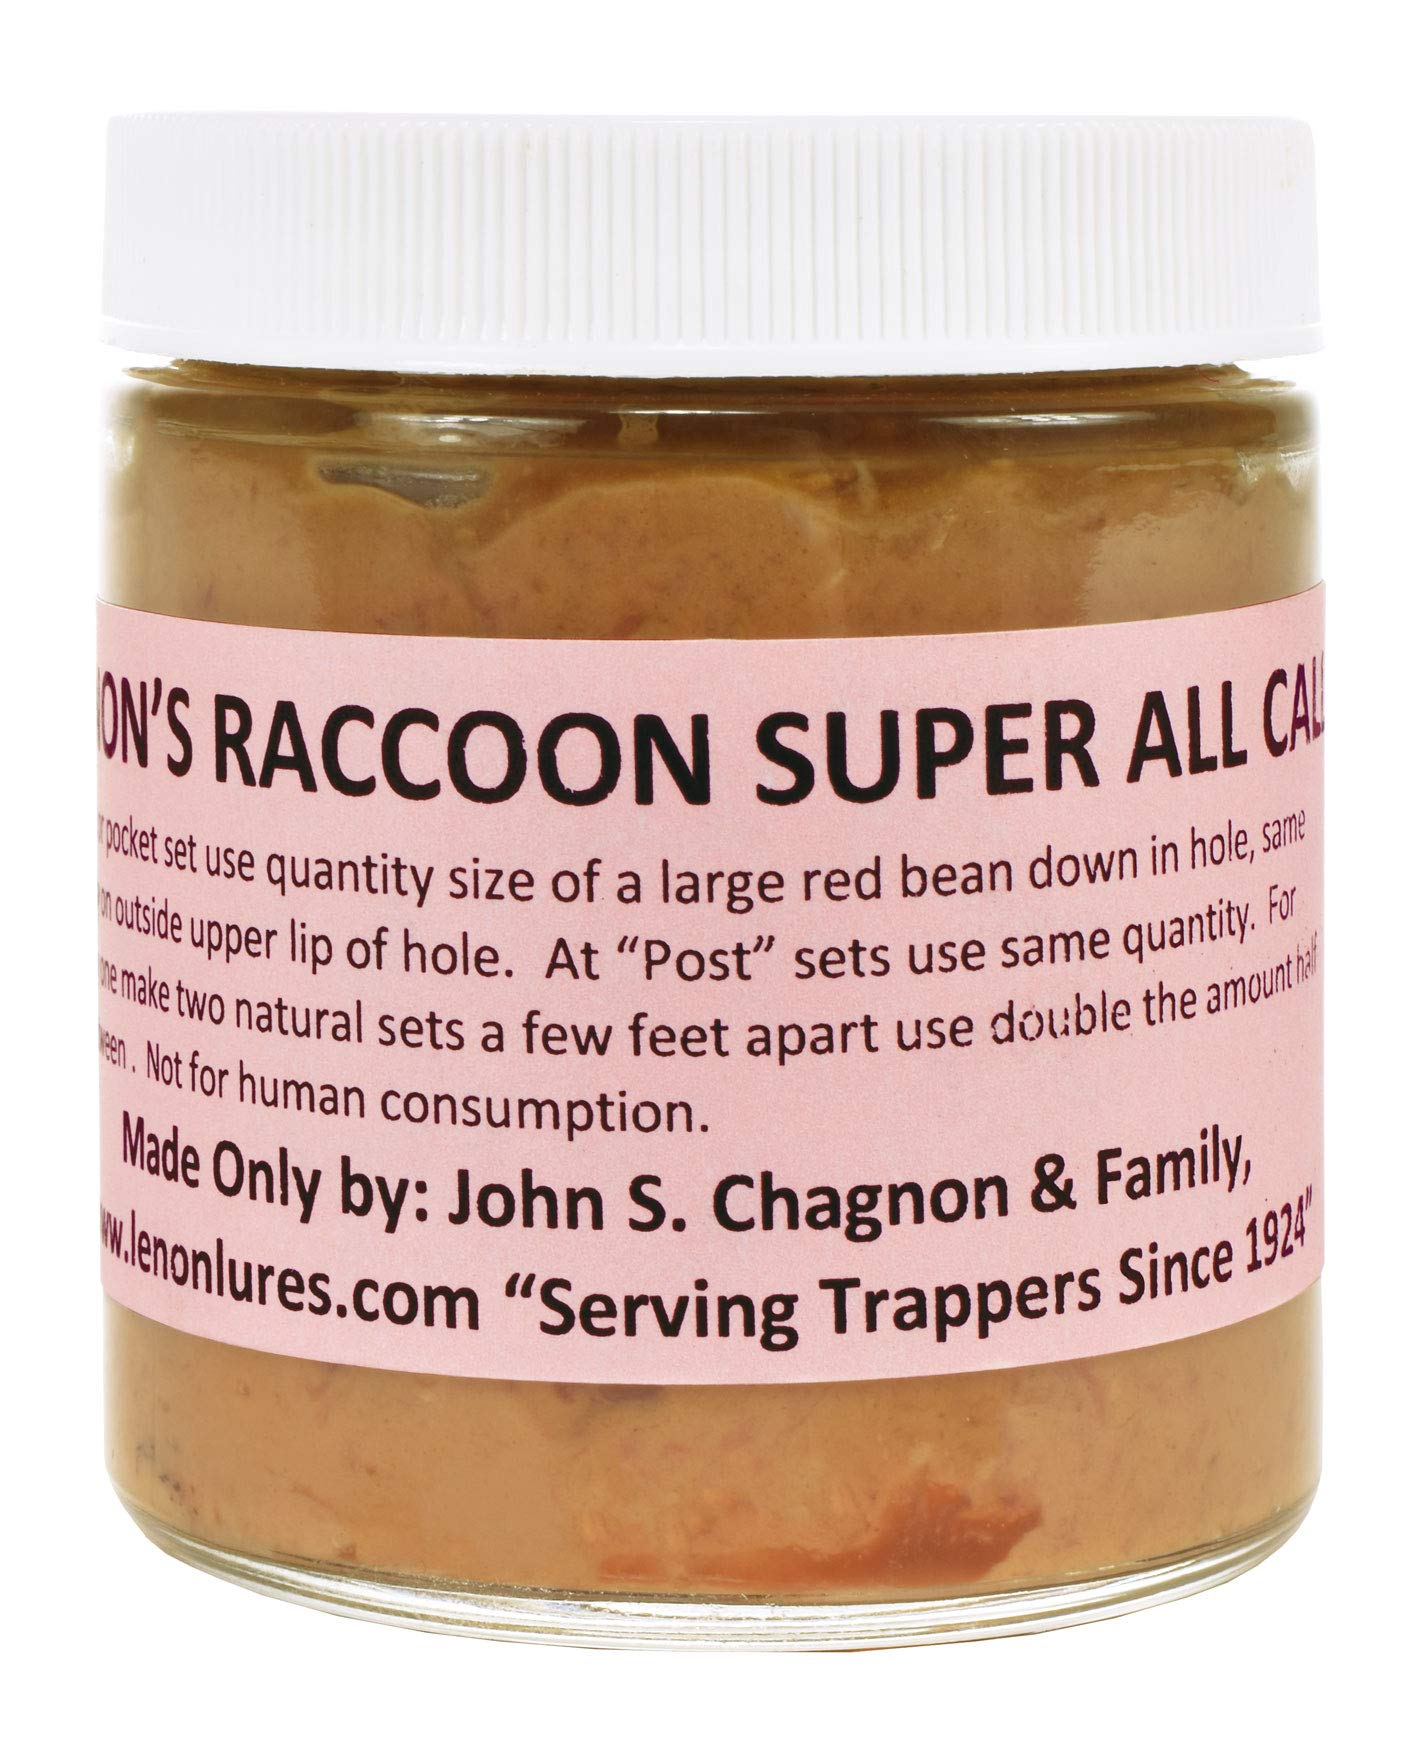 Lenon's Raccoon Super All Call Lure 4 oz. Jar - On the Market Every Year Since 1924 by Lenon Lure